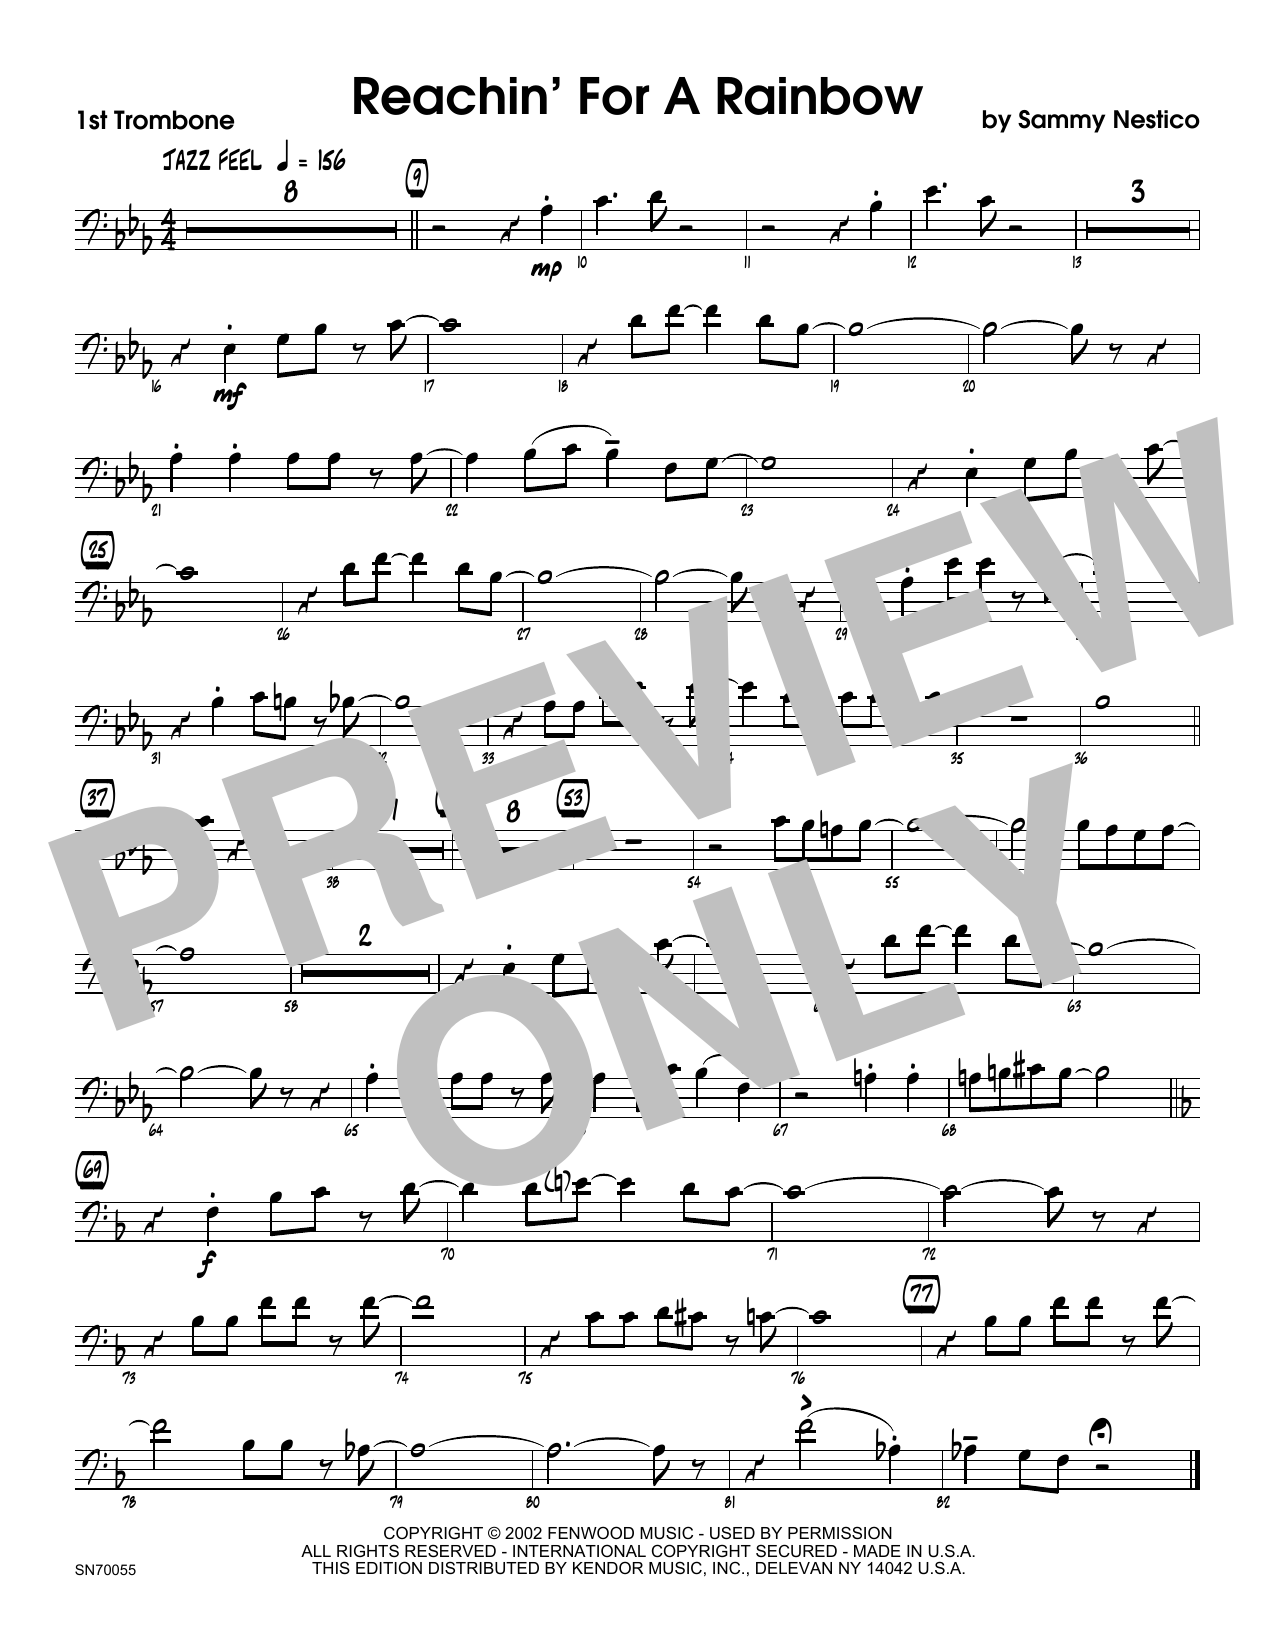 Reachin' For A Rainbow - 1st Trombone Sheet Music